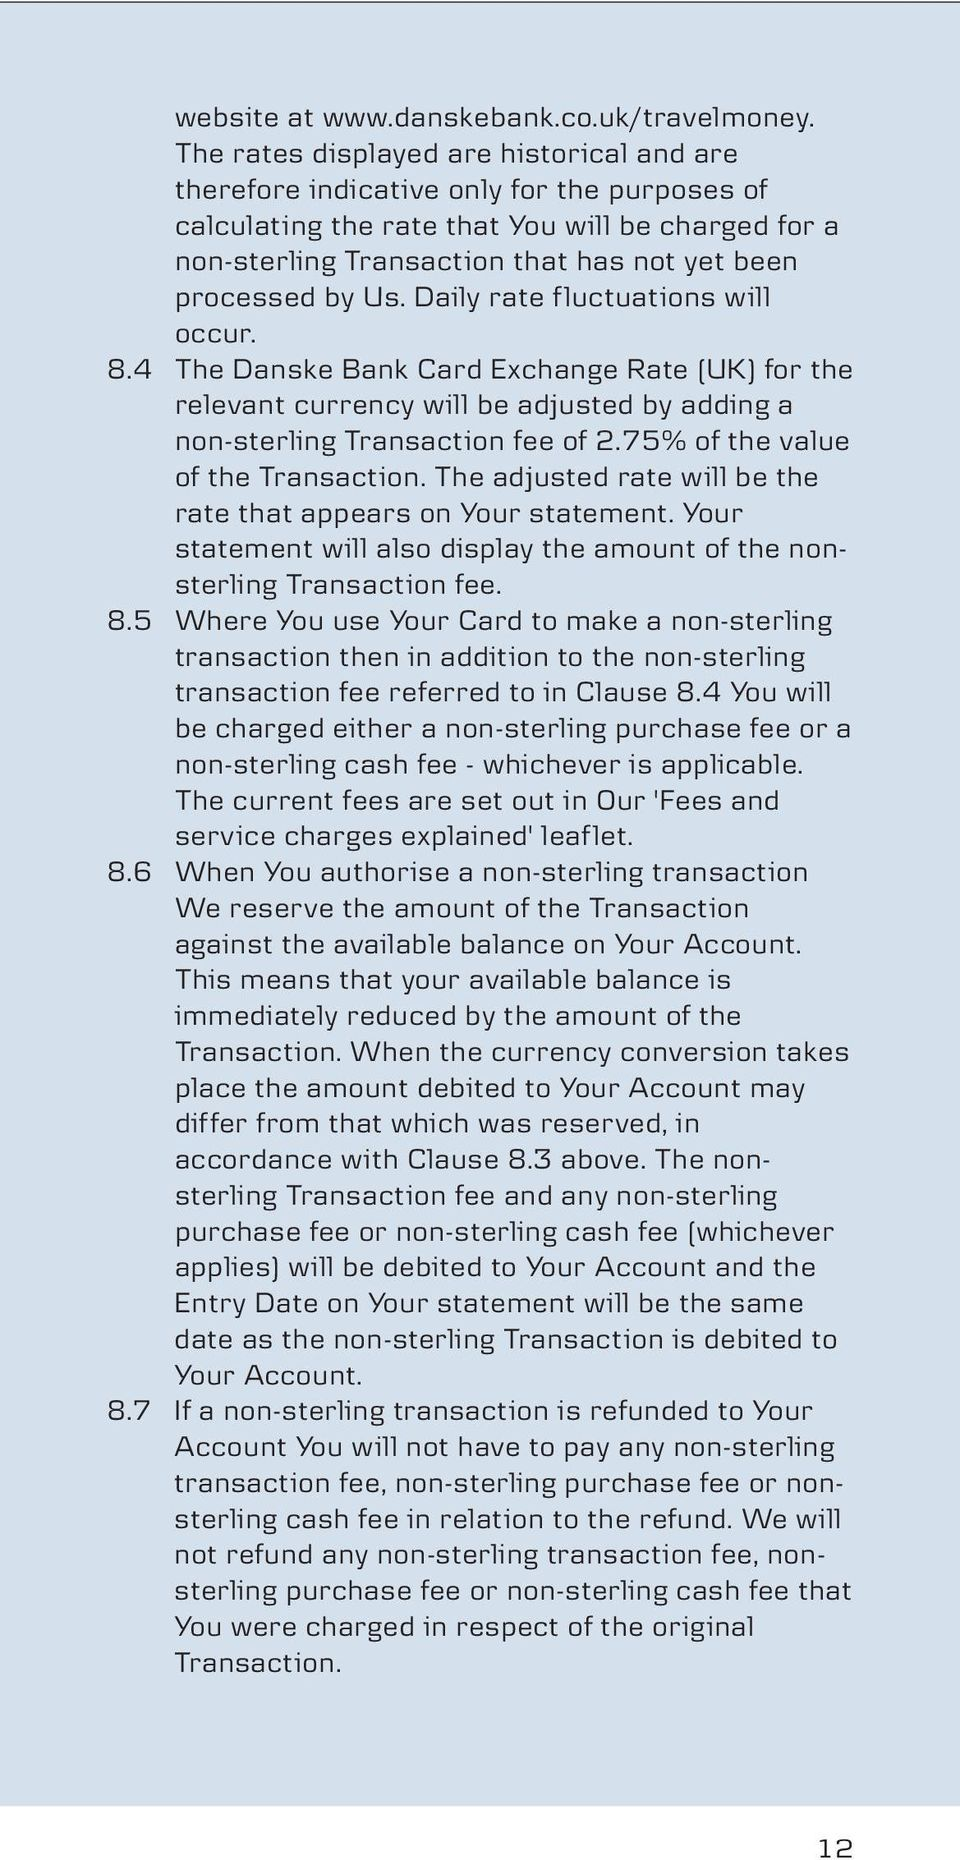 by Us. Daily rate fluctuations will occur. 8.4 The Danske Bank Card Exchange Rate (UK) for the relevant currency will be adjusted by adding a non-sterling Transaction fee of 2.